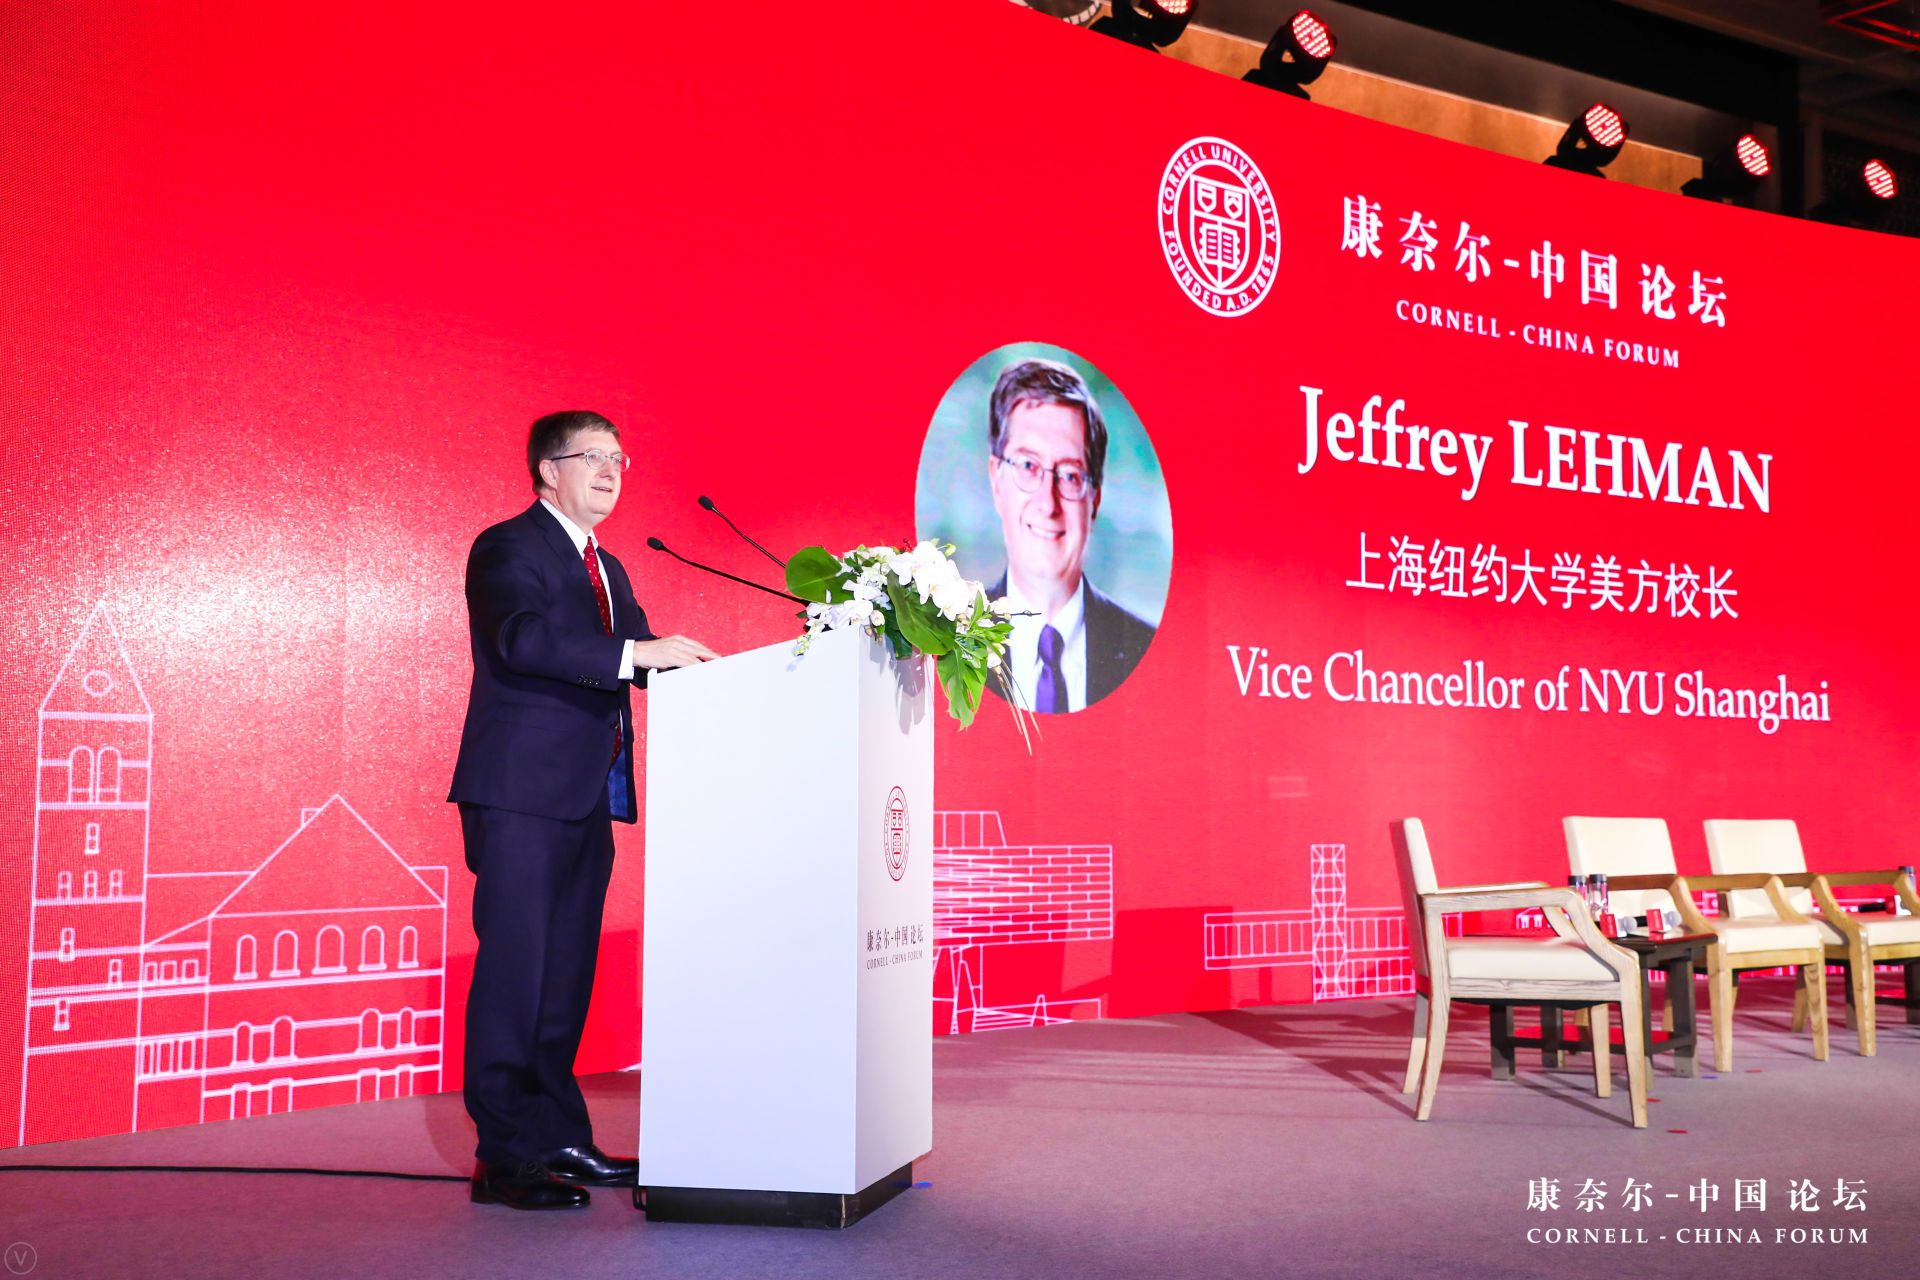 Jeffrey Lehman at Cornell-China Forum Nov 2019